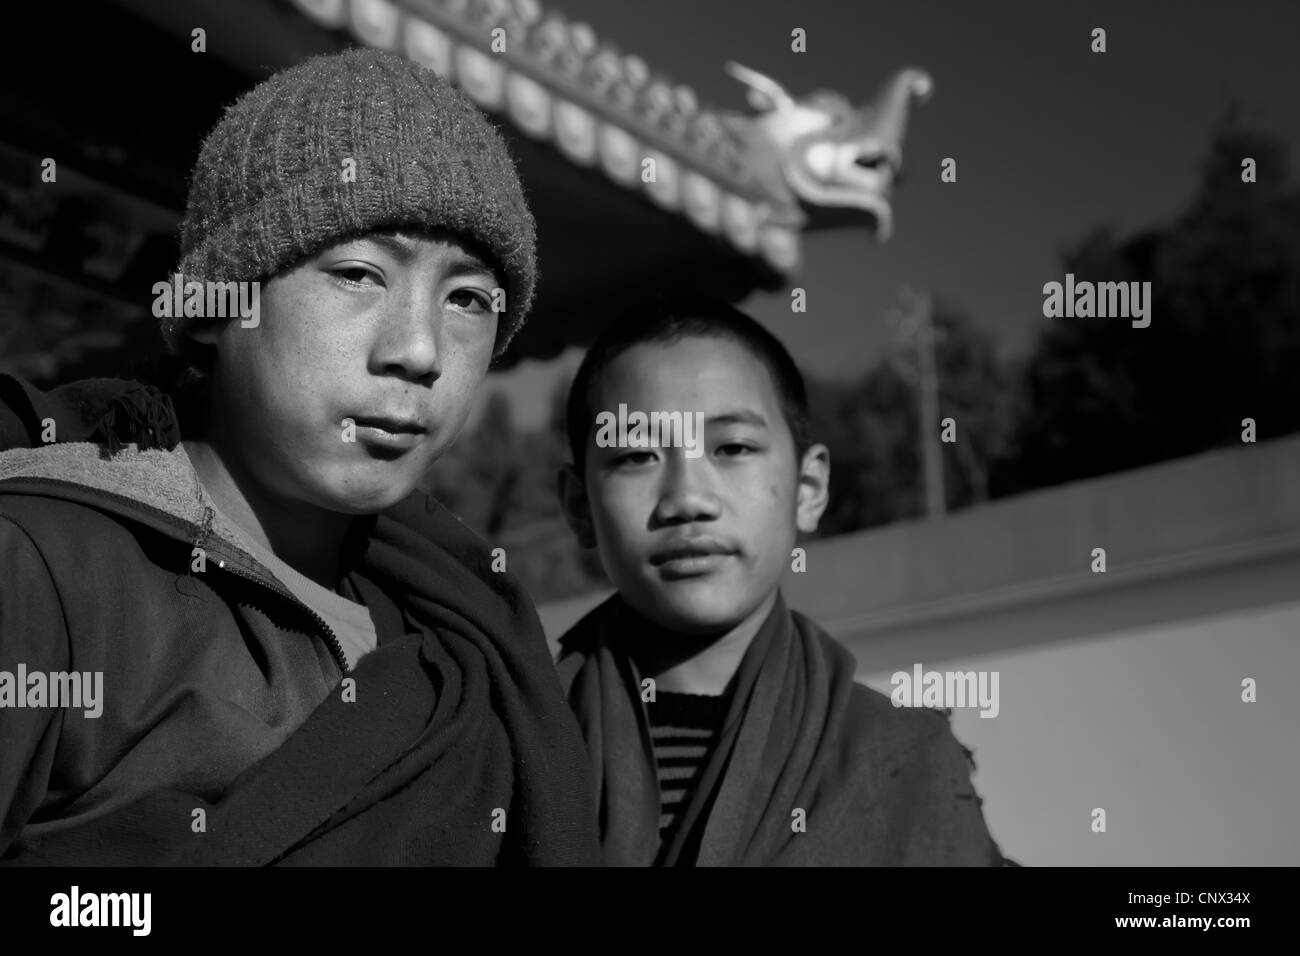 Young monks in front of a monastery in Bomdila, Arunachal Pradesh, India - Stock Image